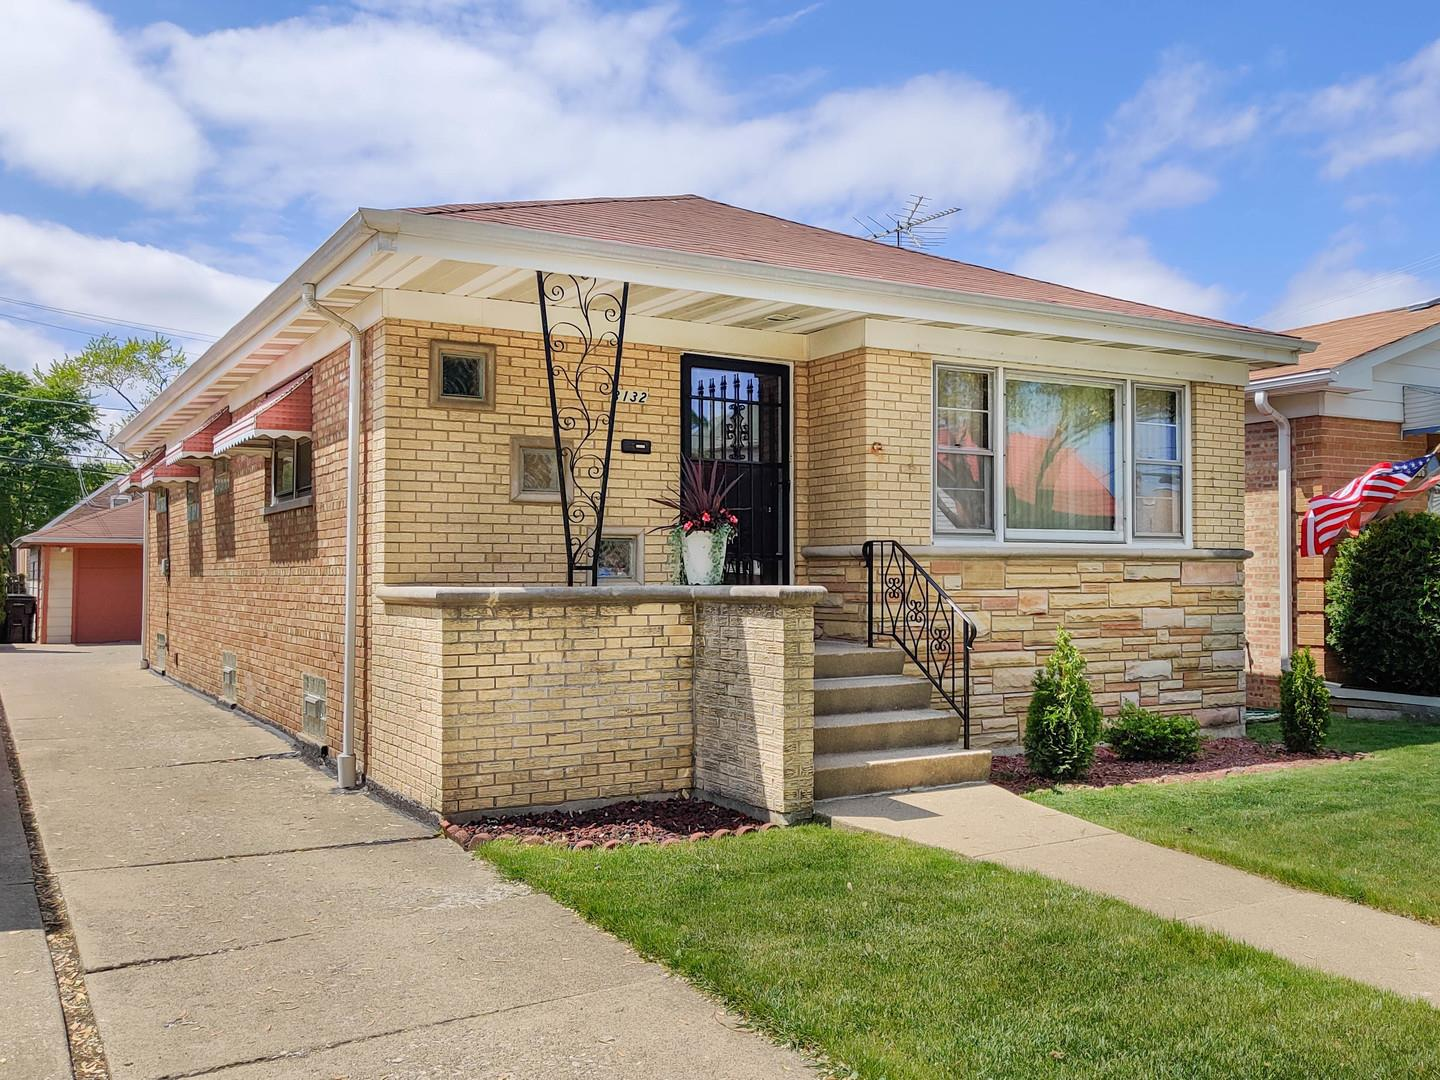 3132 N OLEANDER Avenue, Chicago, IL 60634 - #: 11086471